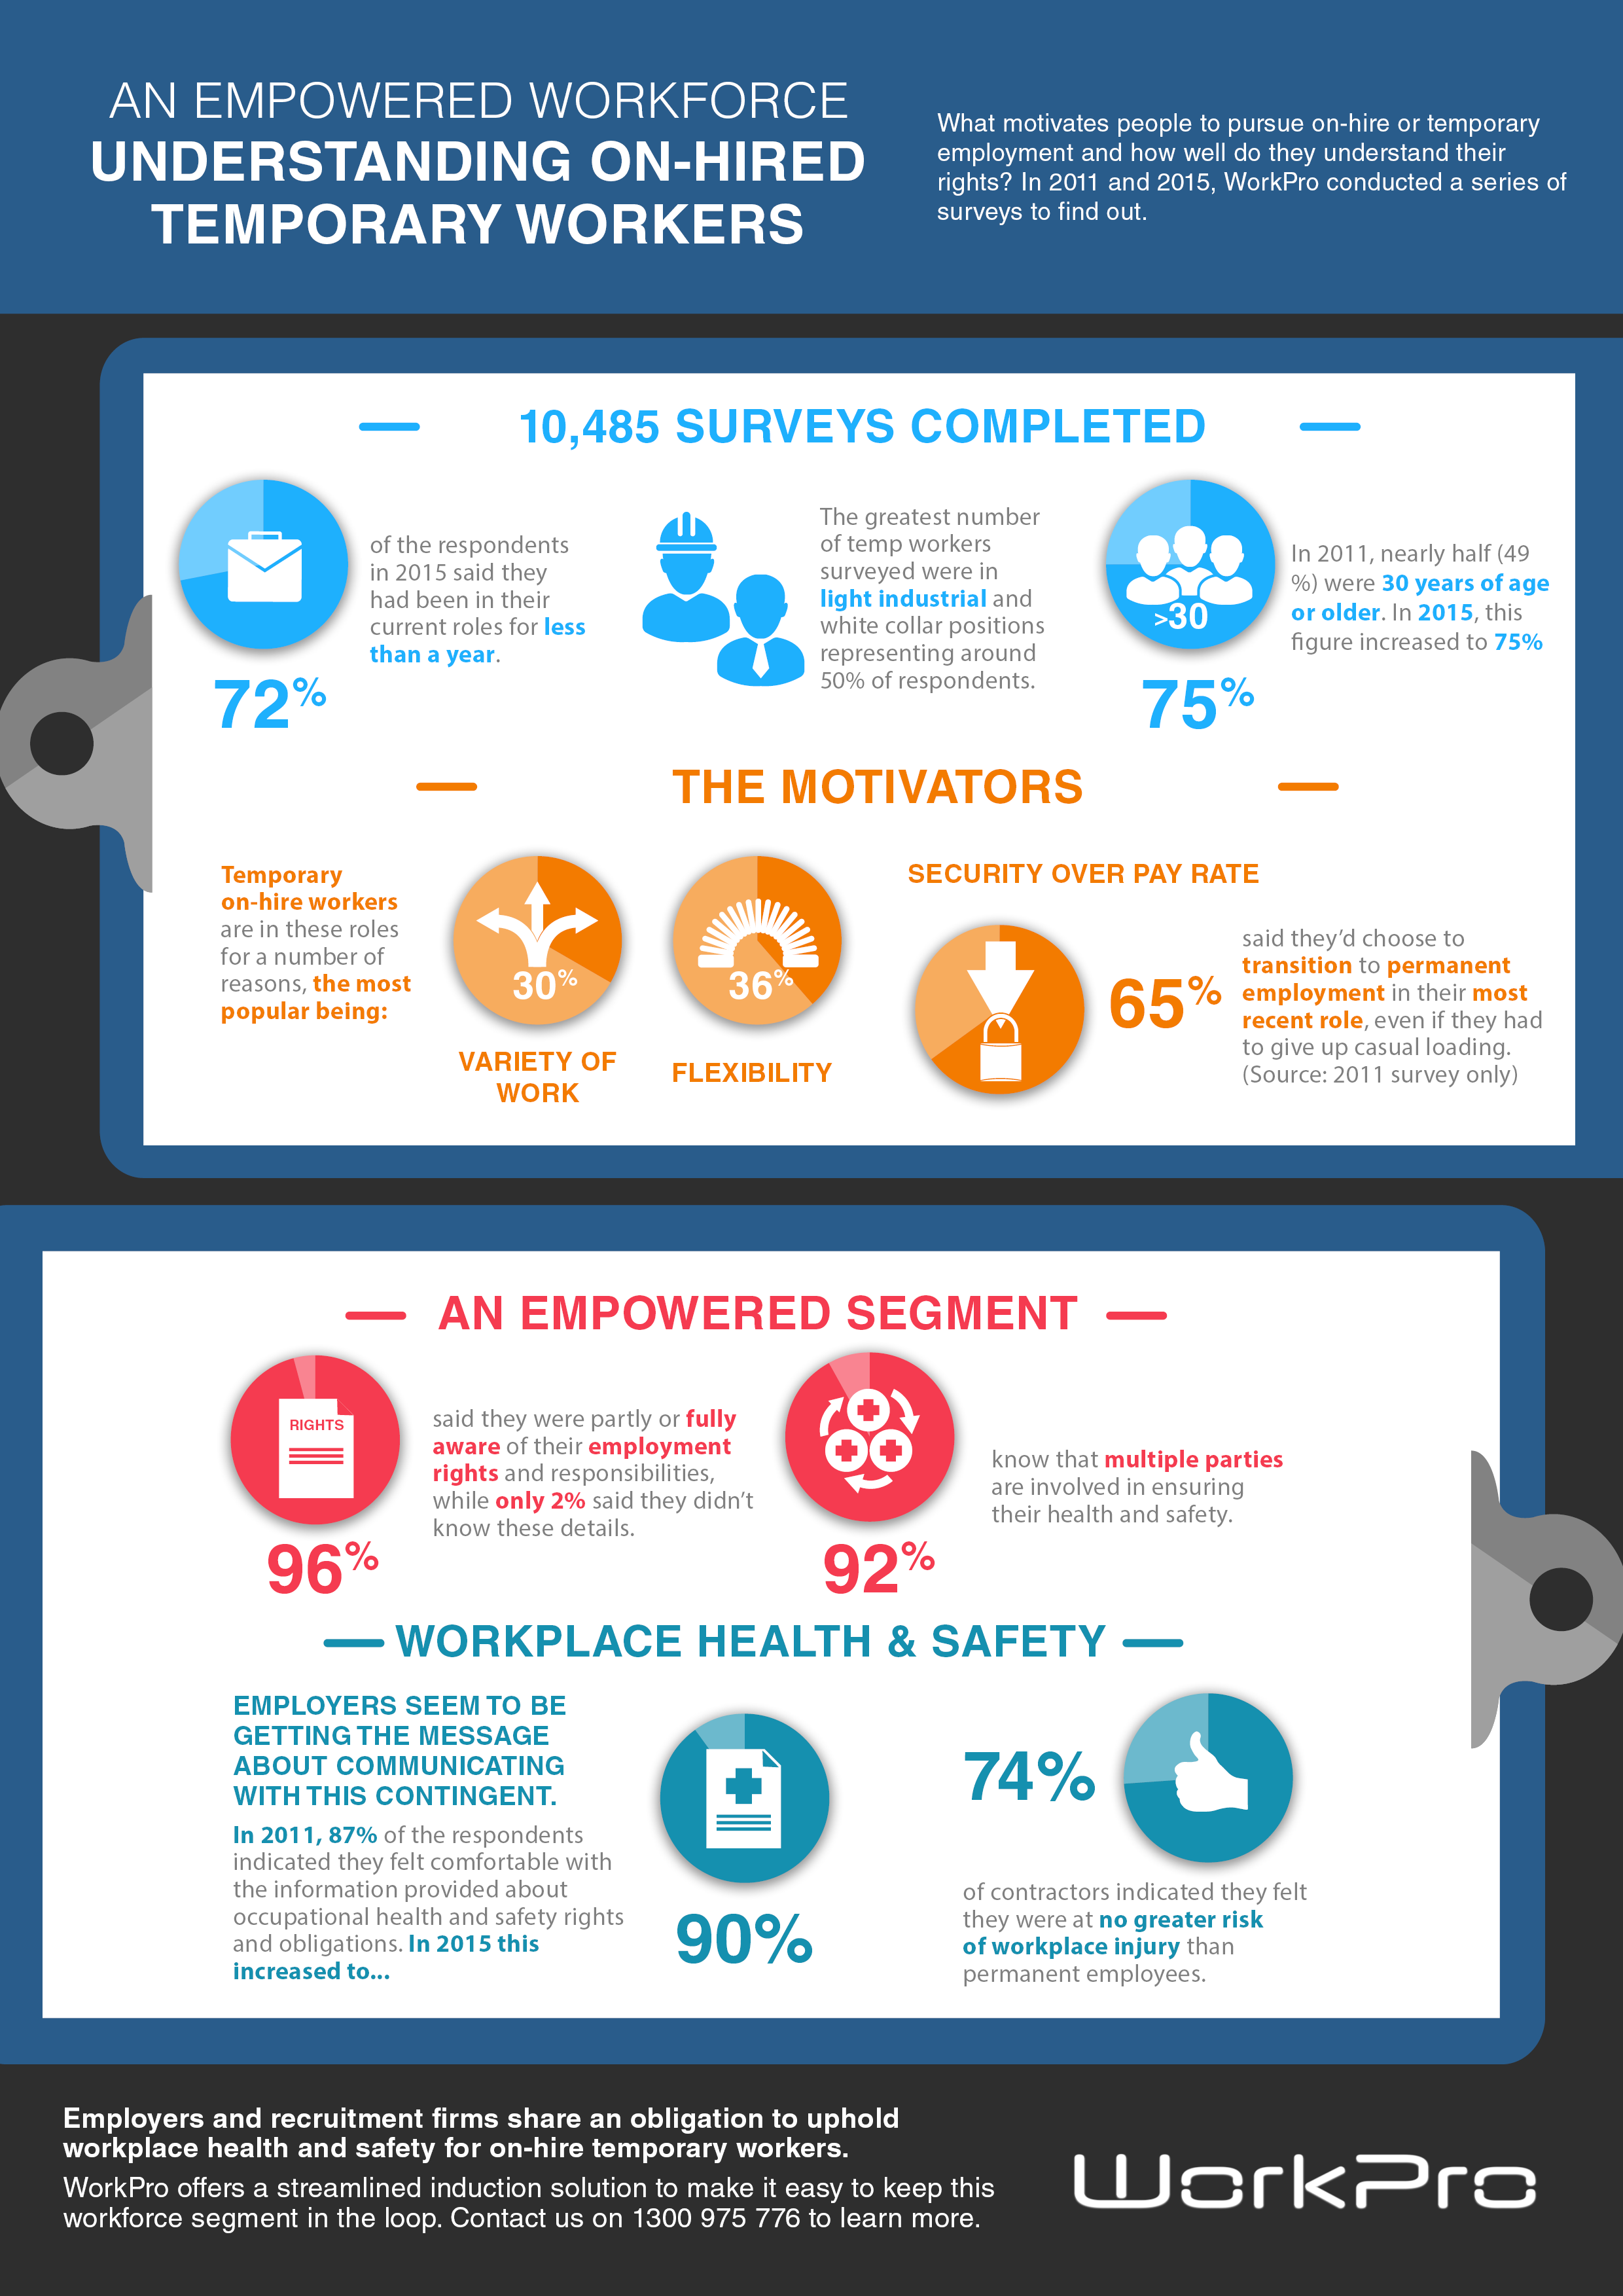 Insights into the levels of health and safety awareness among temporary workers.